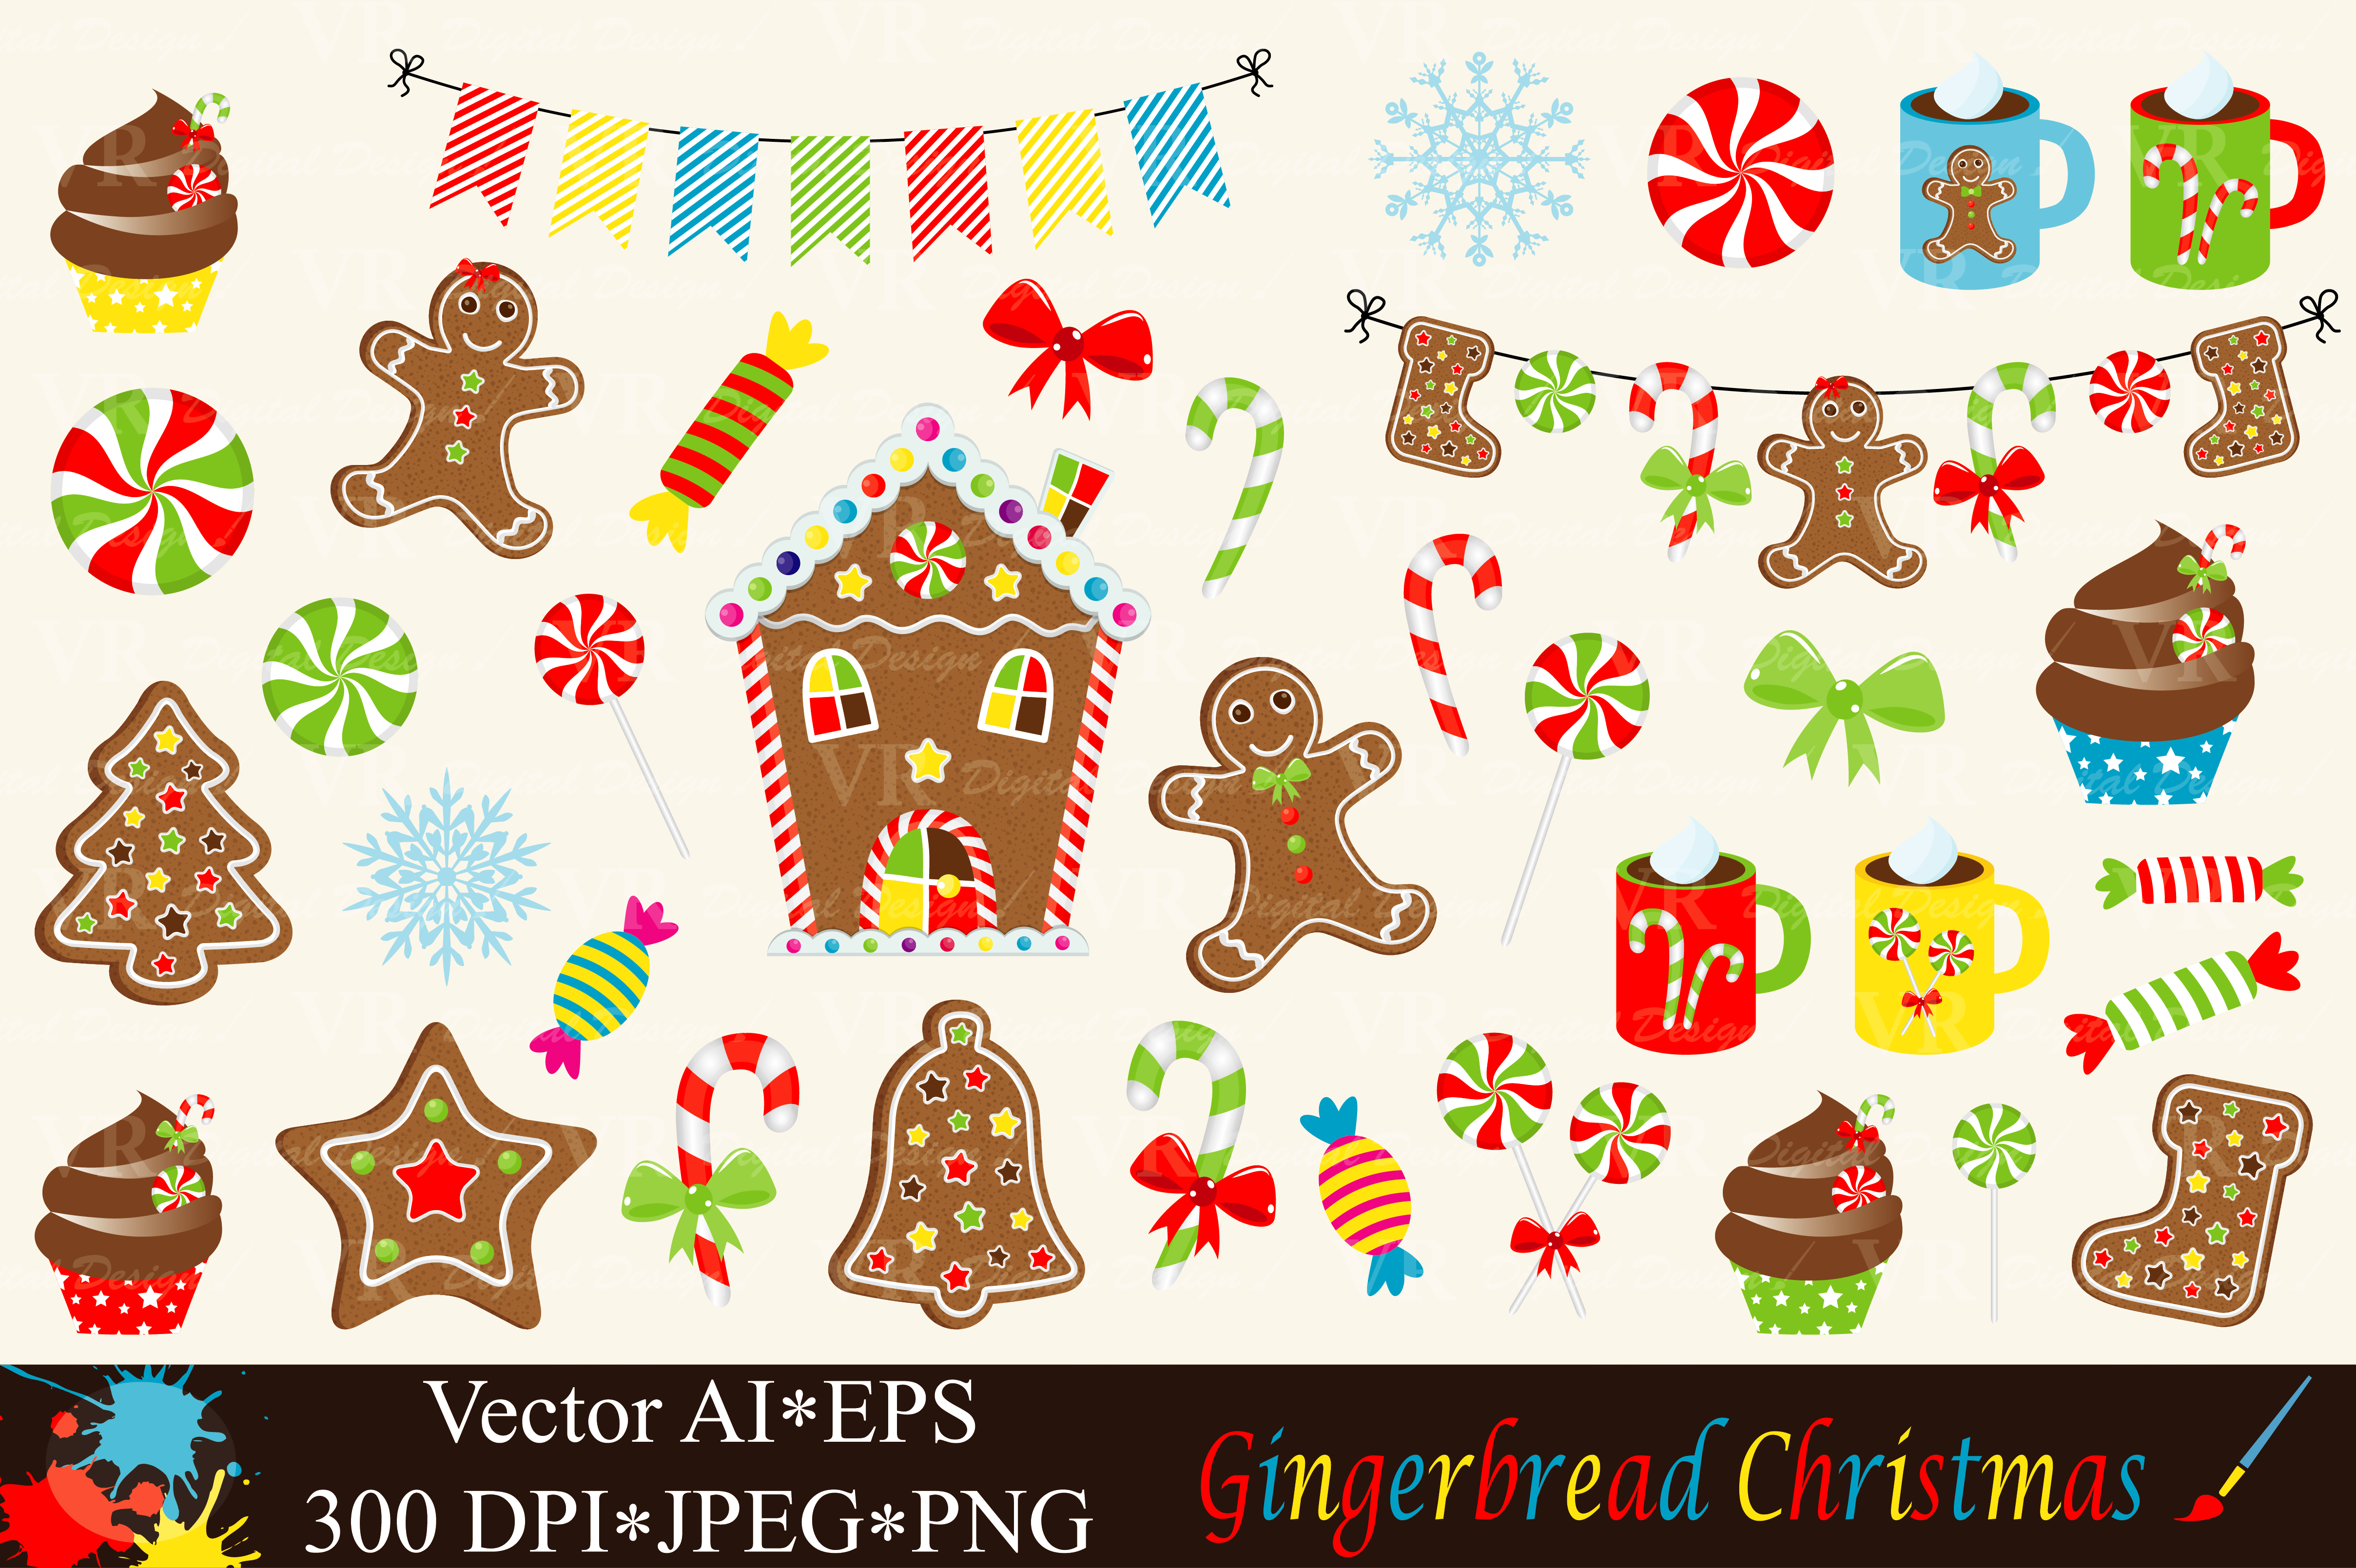 Download Free Christmas Gingerbread Clipart Vector Graphic By Vr Digital for Cricut Explore, Silhouette and other cutting machines.